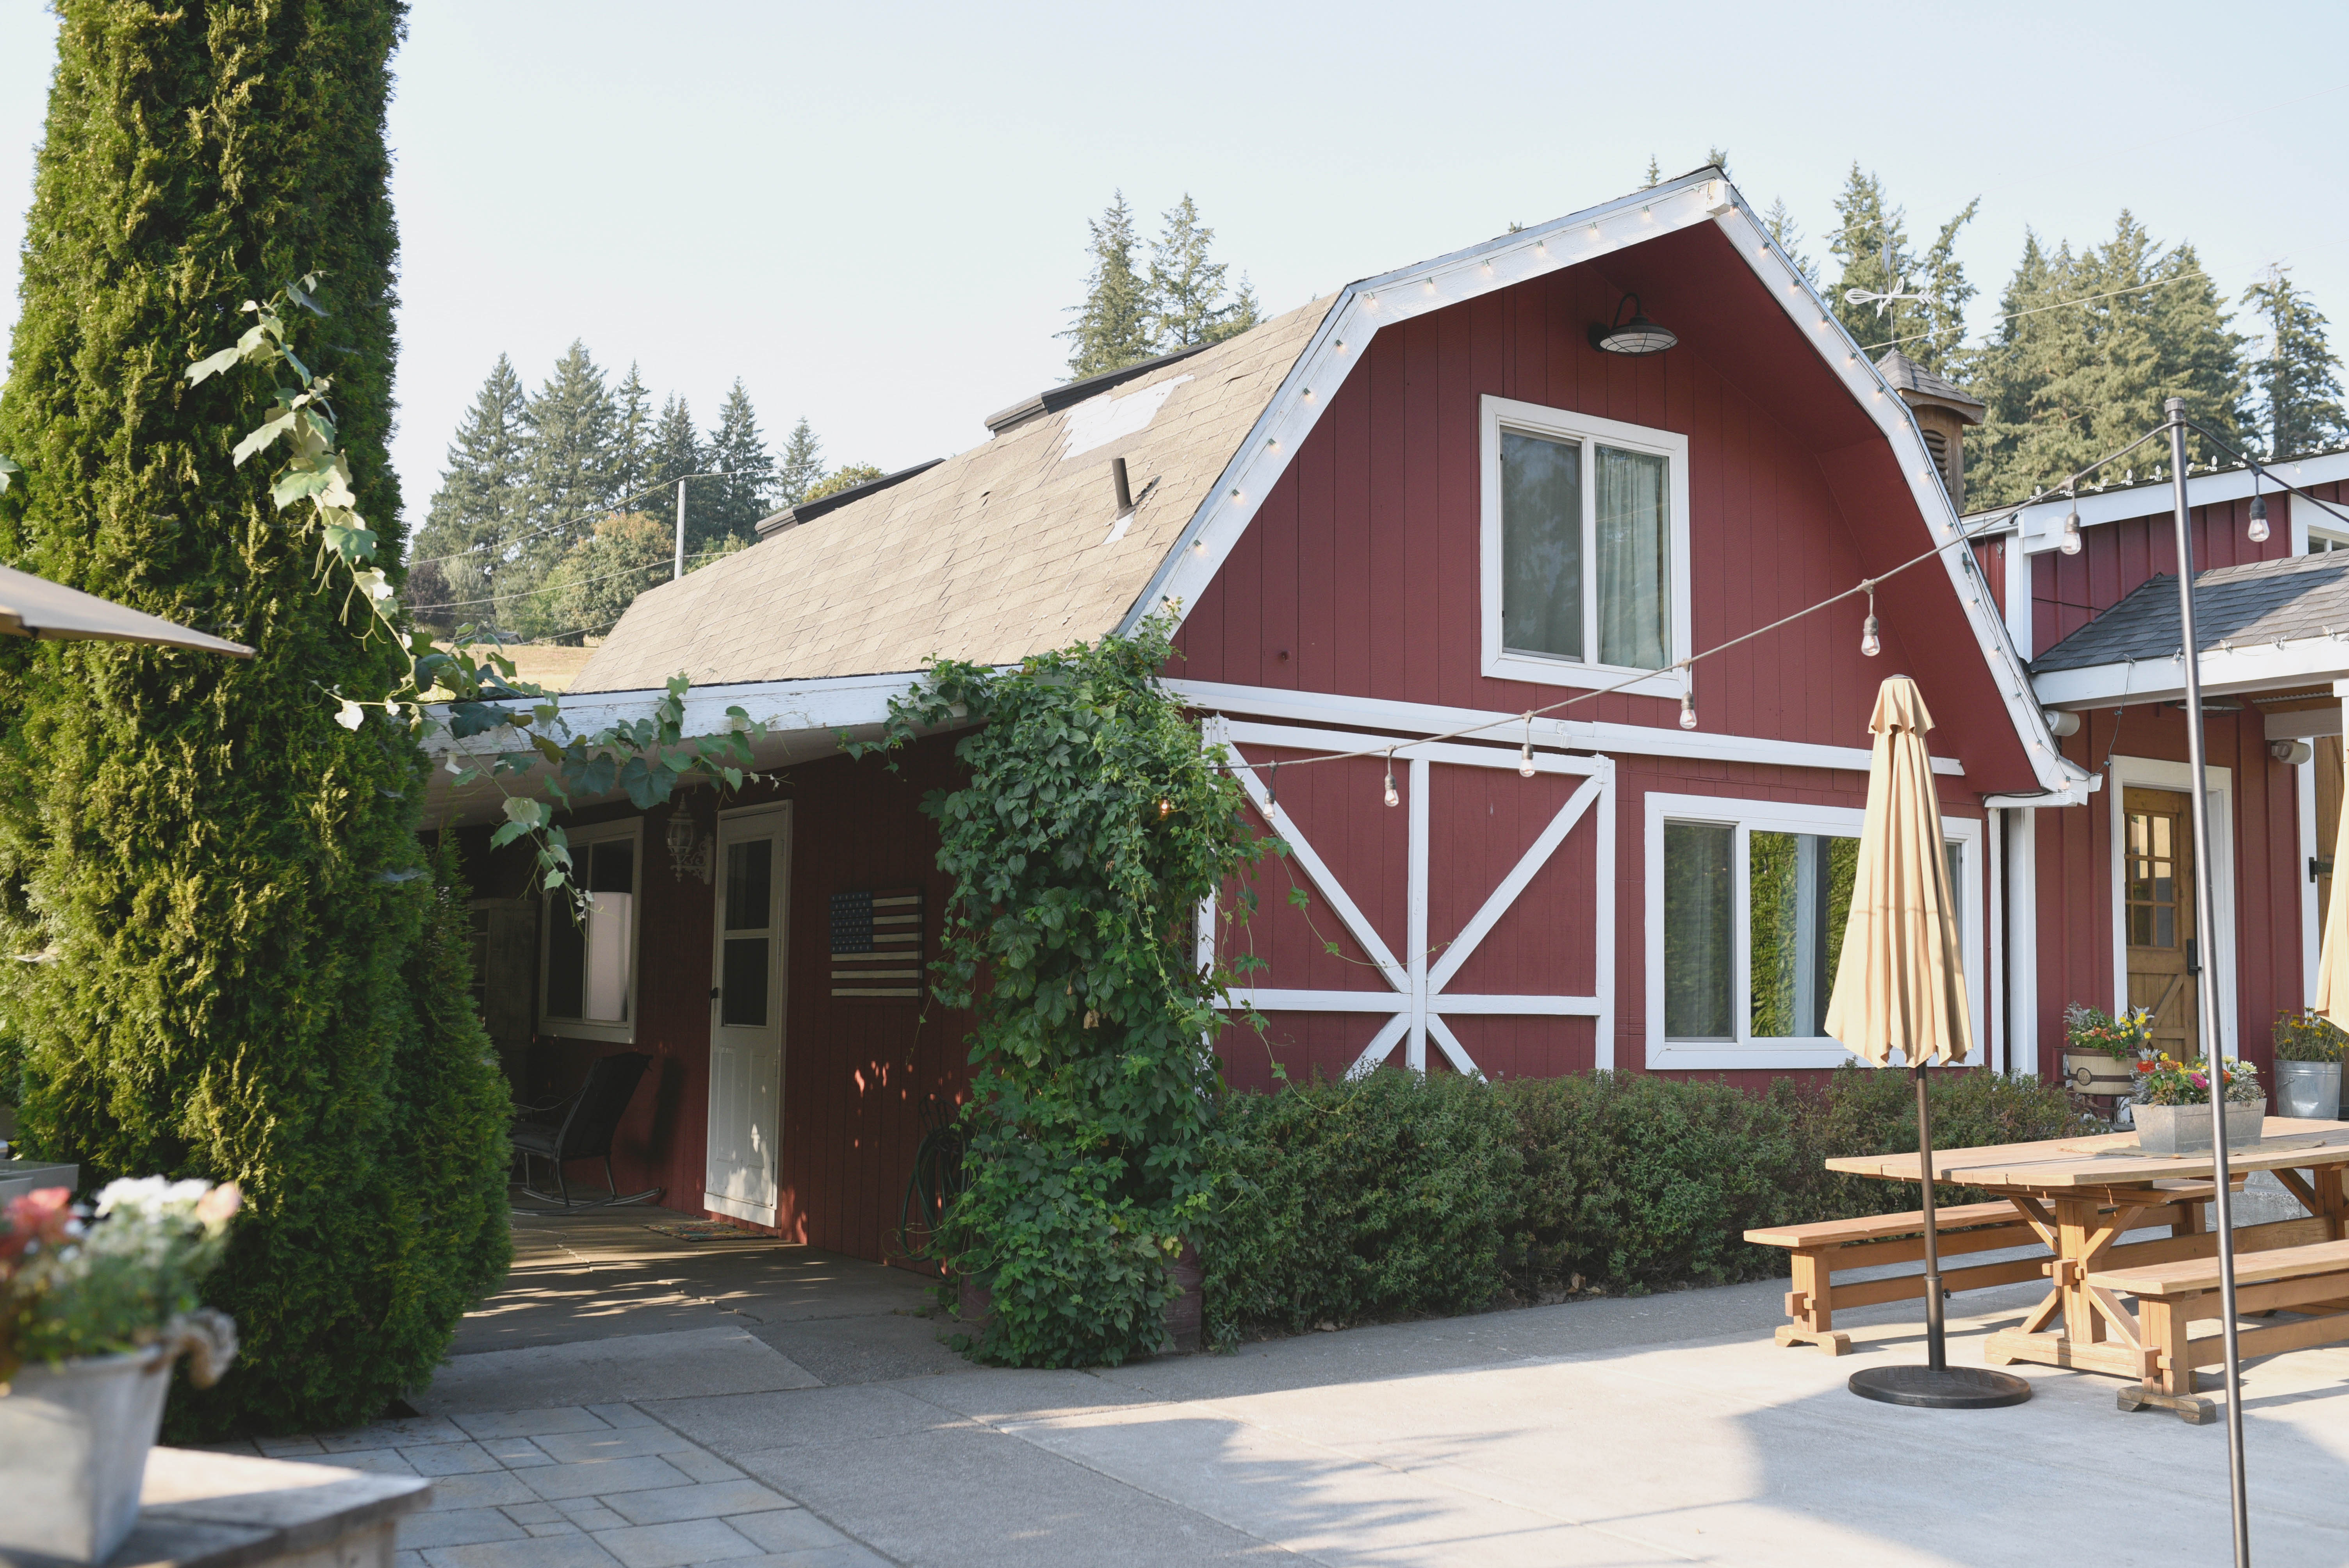 Stupendous Farmhouse Airbnb In Oregon Family Friendly Travel Destinations Ocoug Best Dining Table And Chair Ideas Images Ocougorg